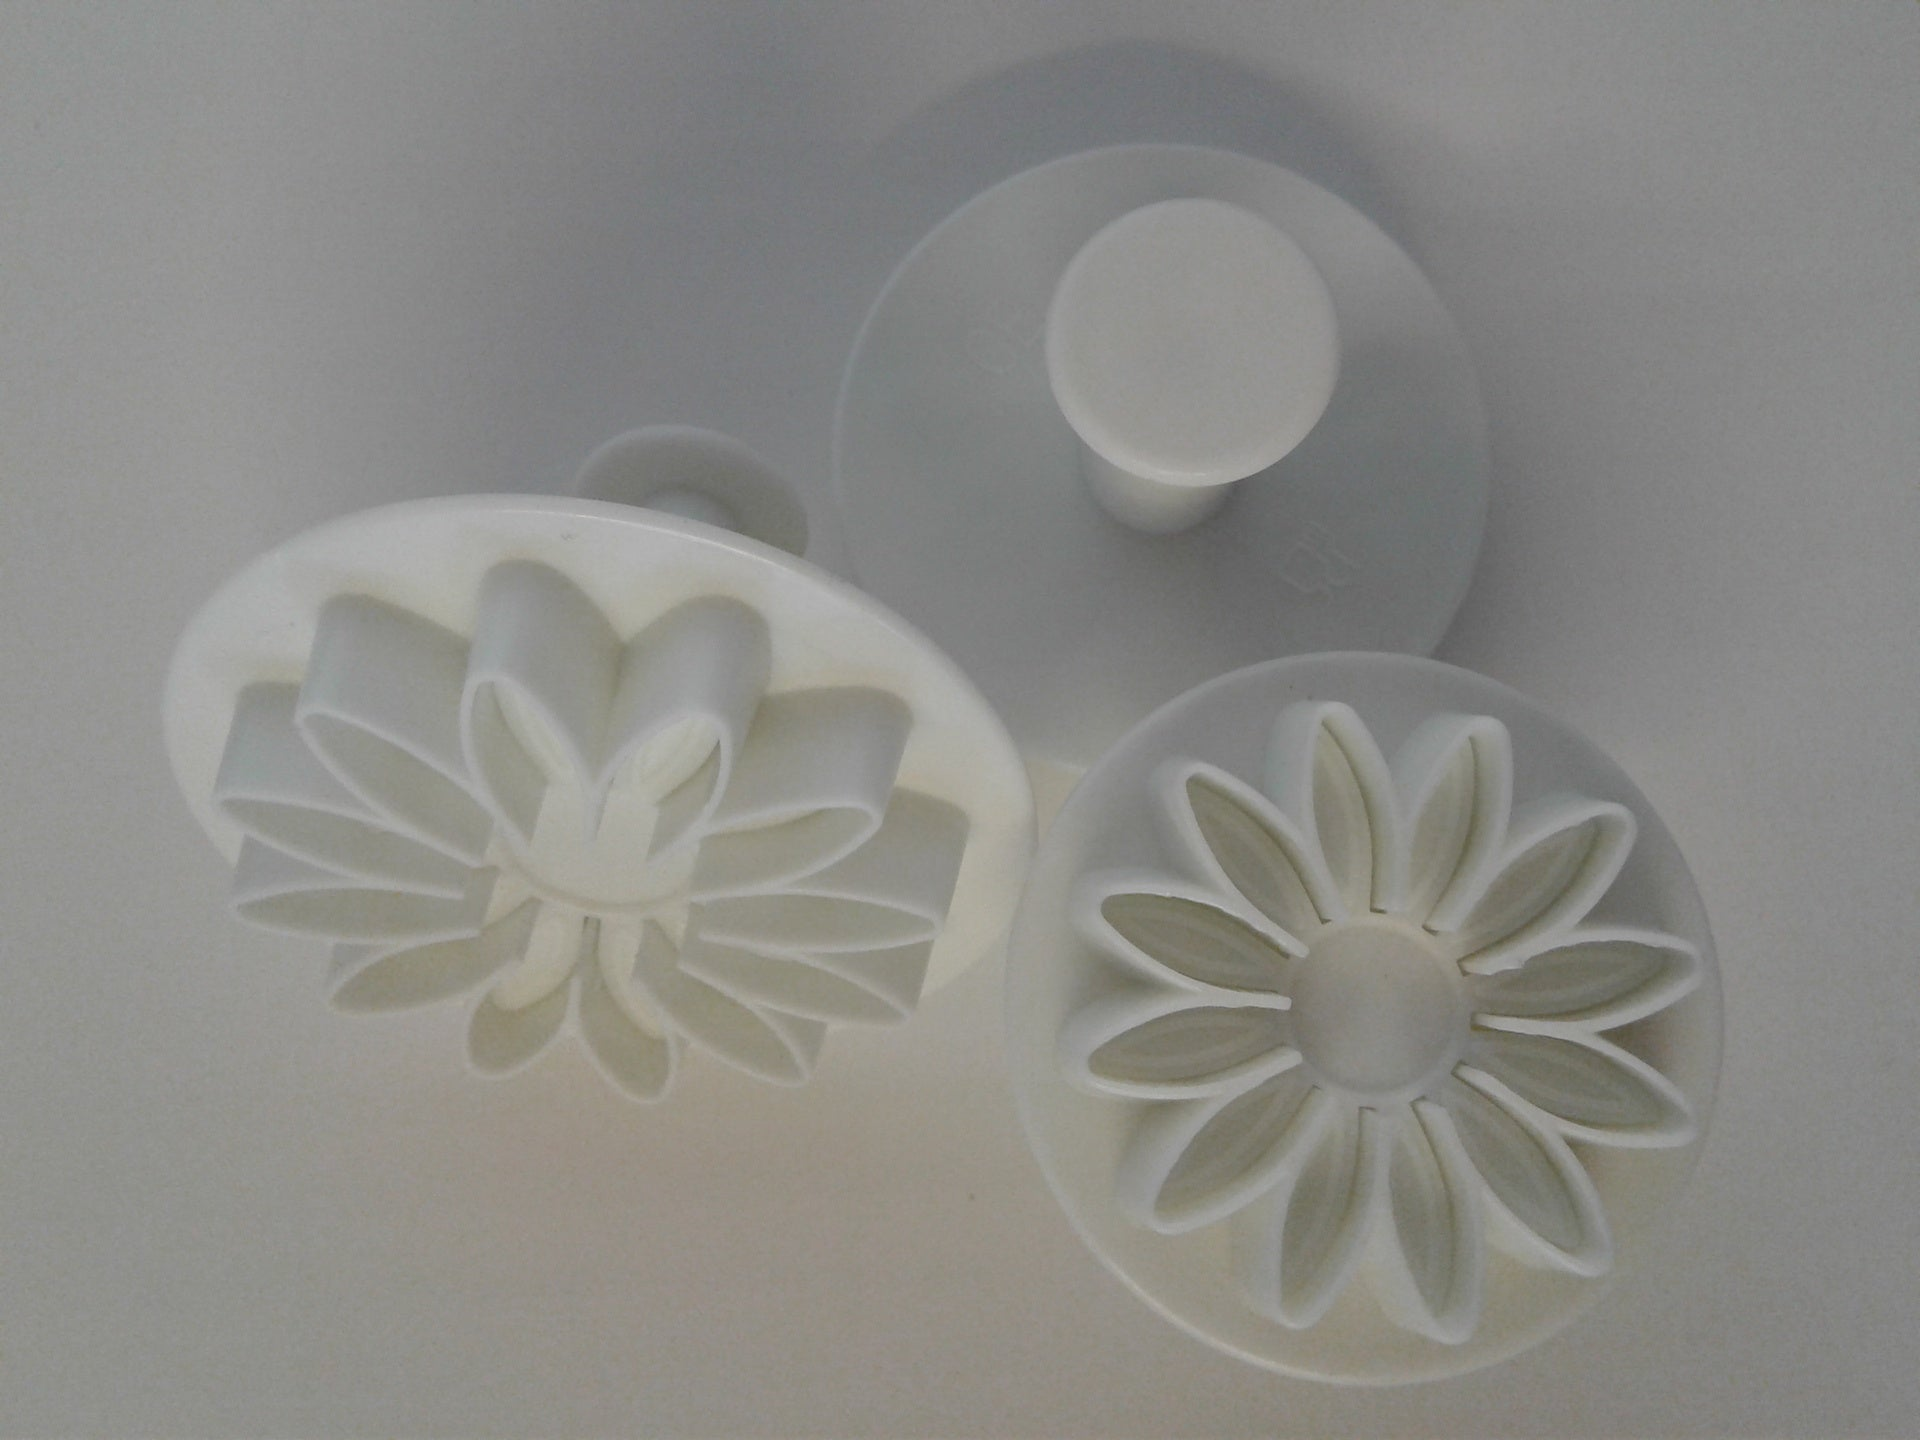 Sunflower Plunger Cutter 3 Piece